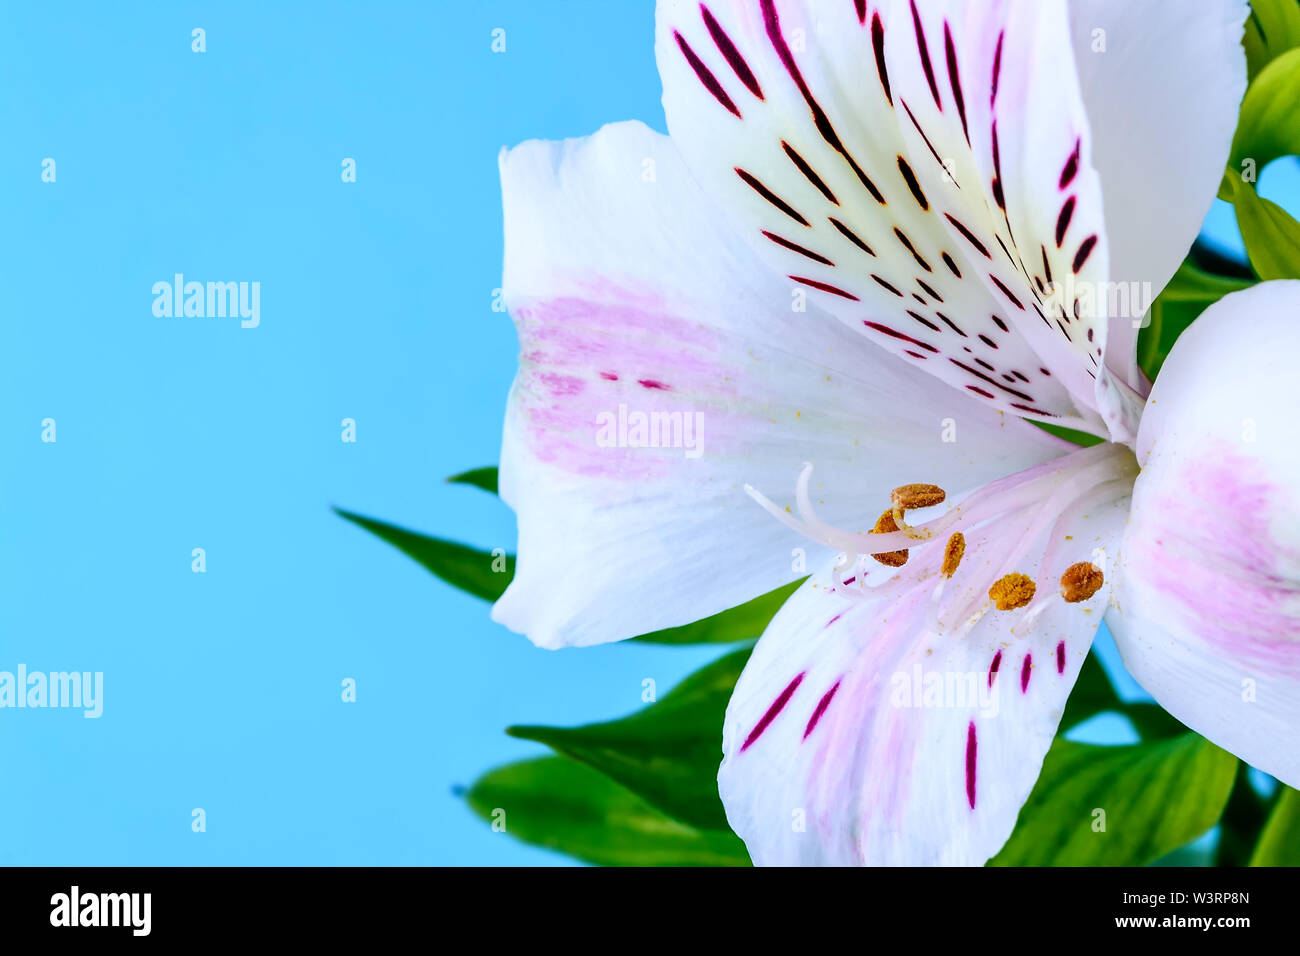 Close-up of white flower of alstroemeria, commonly called the Peruvian lily or lily of the Incas and copy space on a blue background. Stock Photo